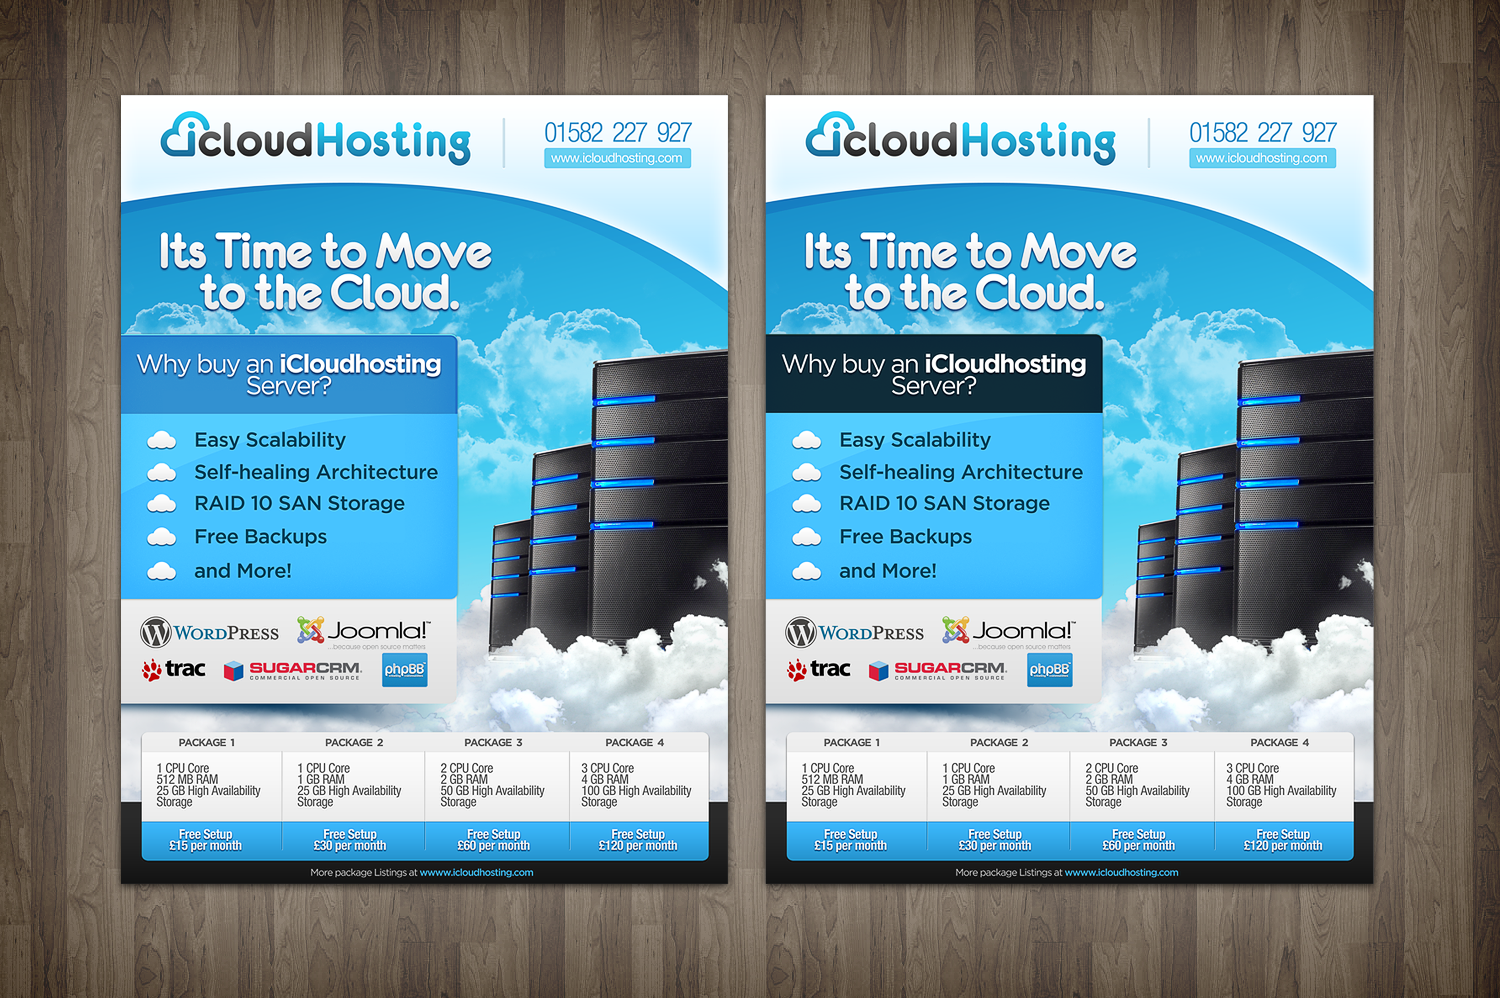 Help iCloudHosting with a new print or packaging design